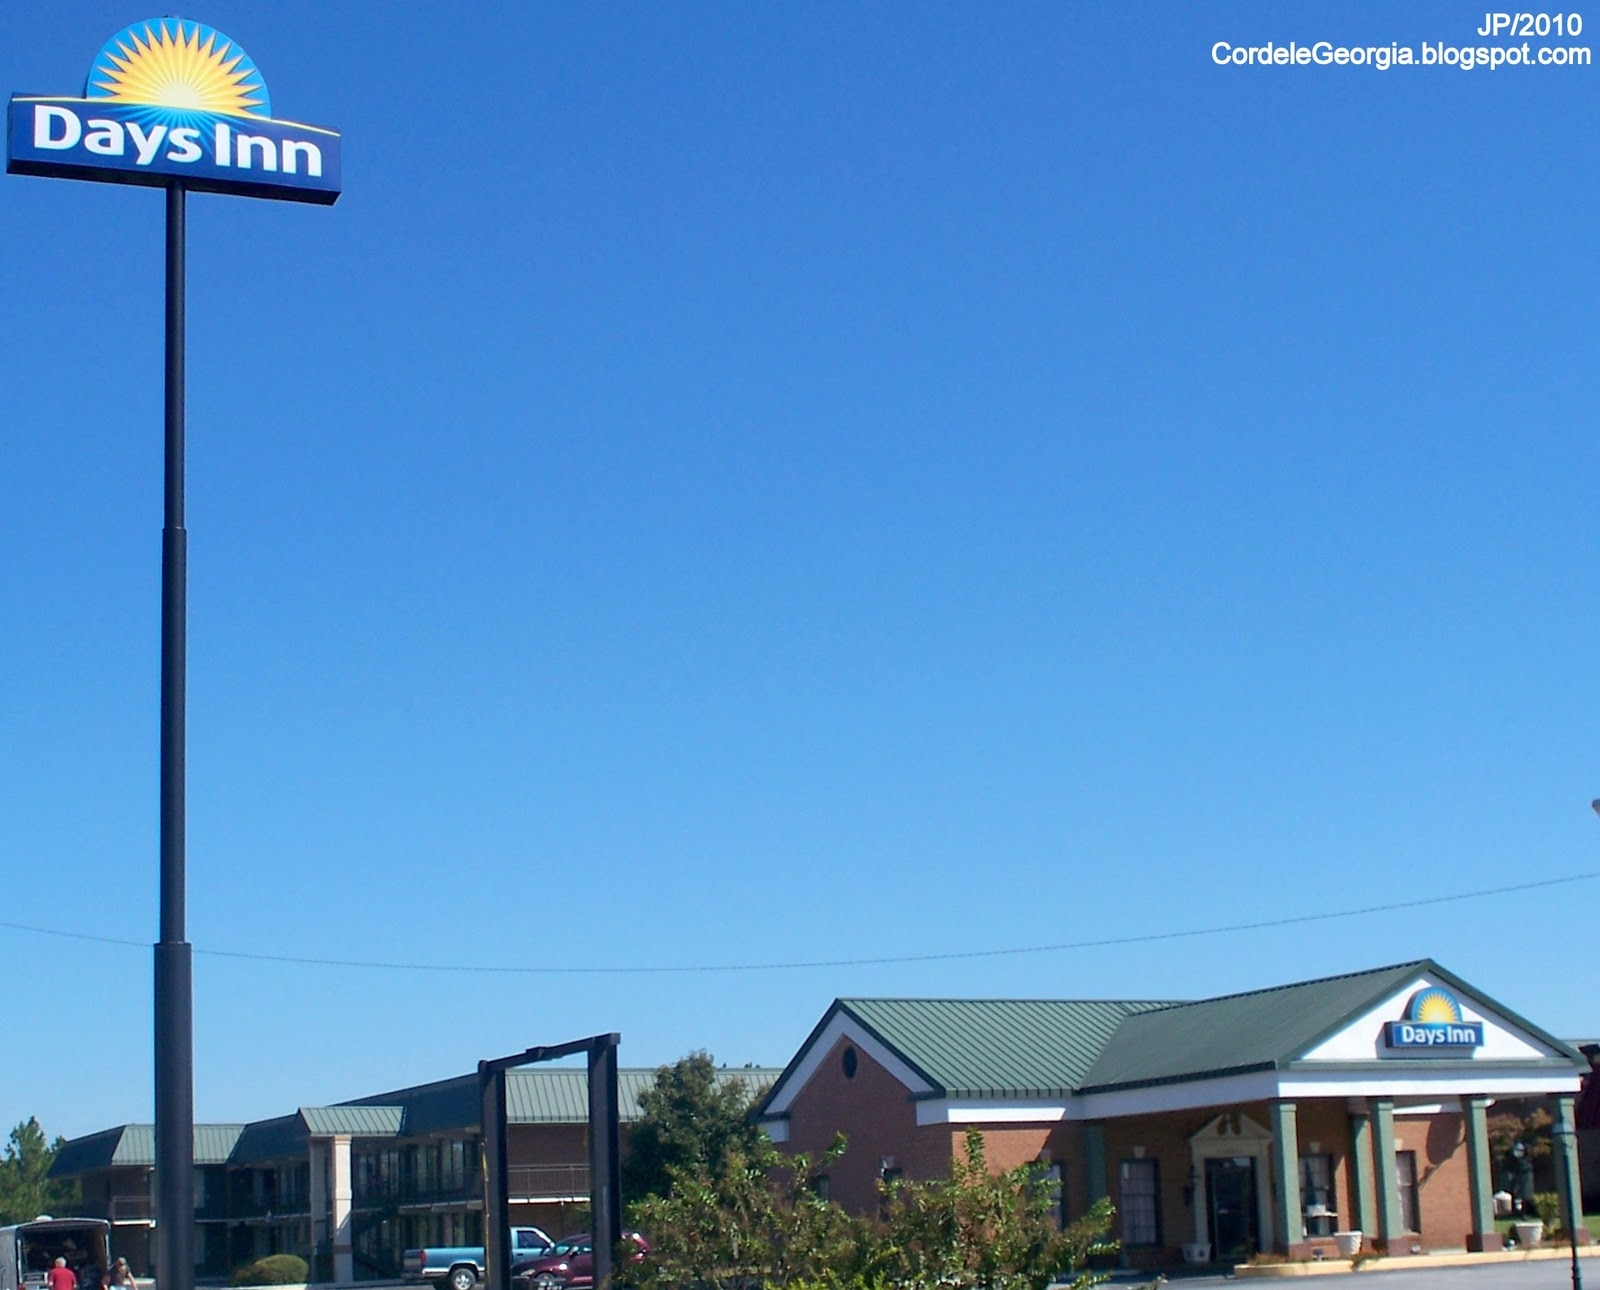 Days Inn Cordele Georgia East 16th Avenue At I 75 Hotel Lodging Travel Rooms Crisp County